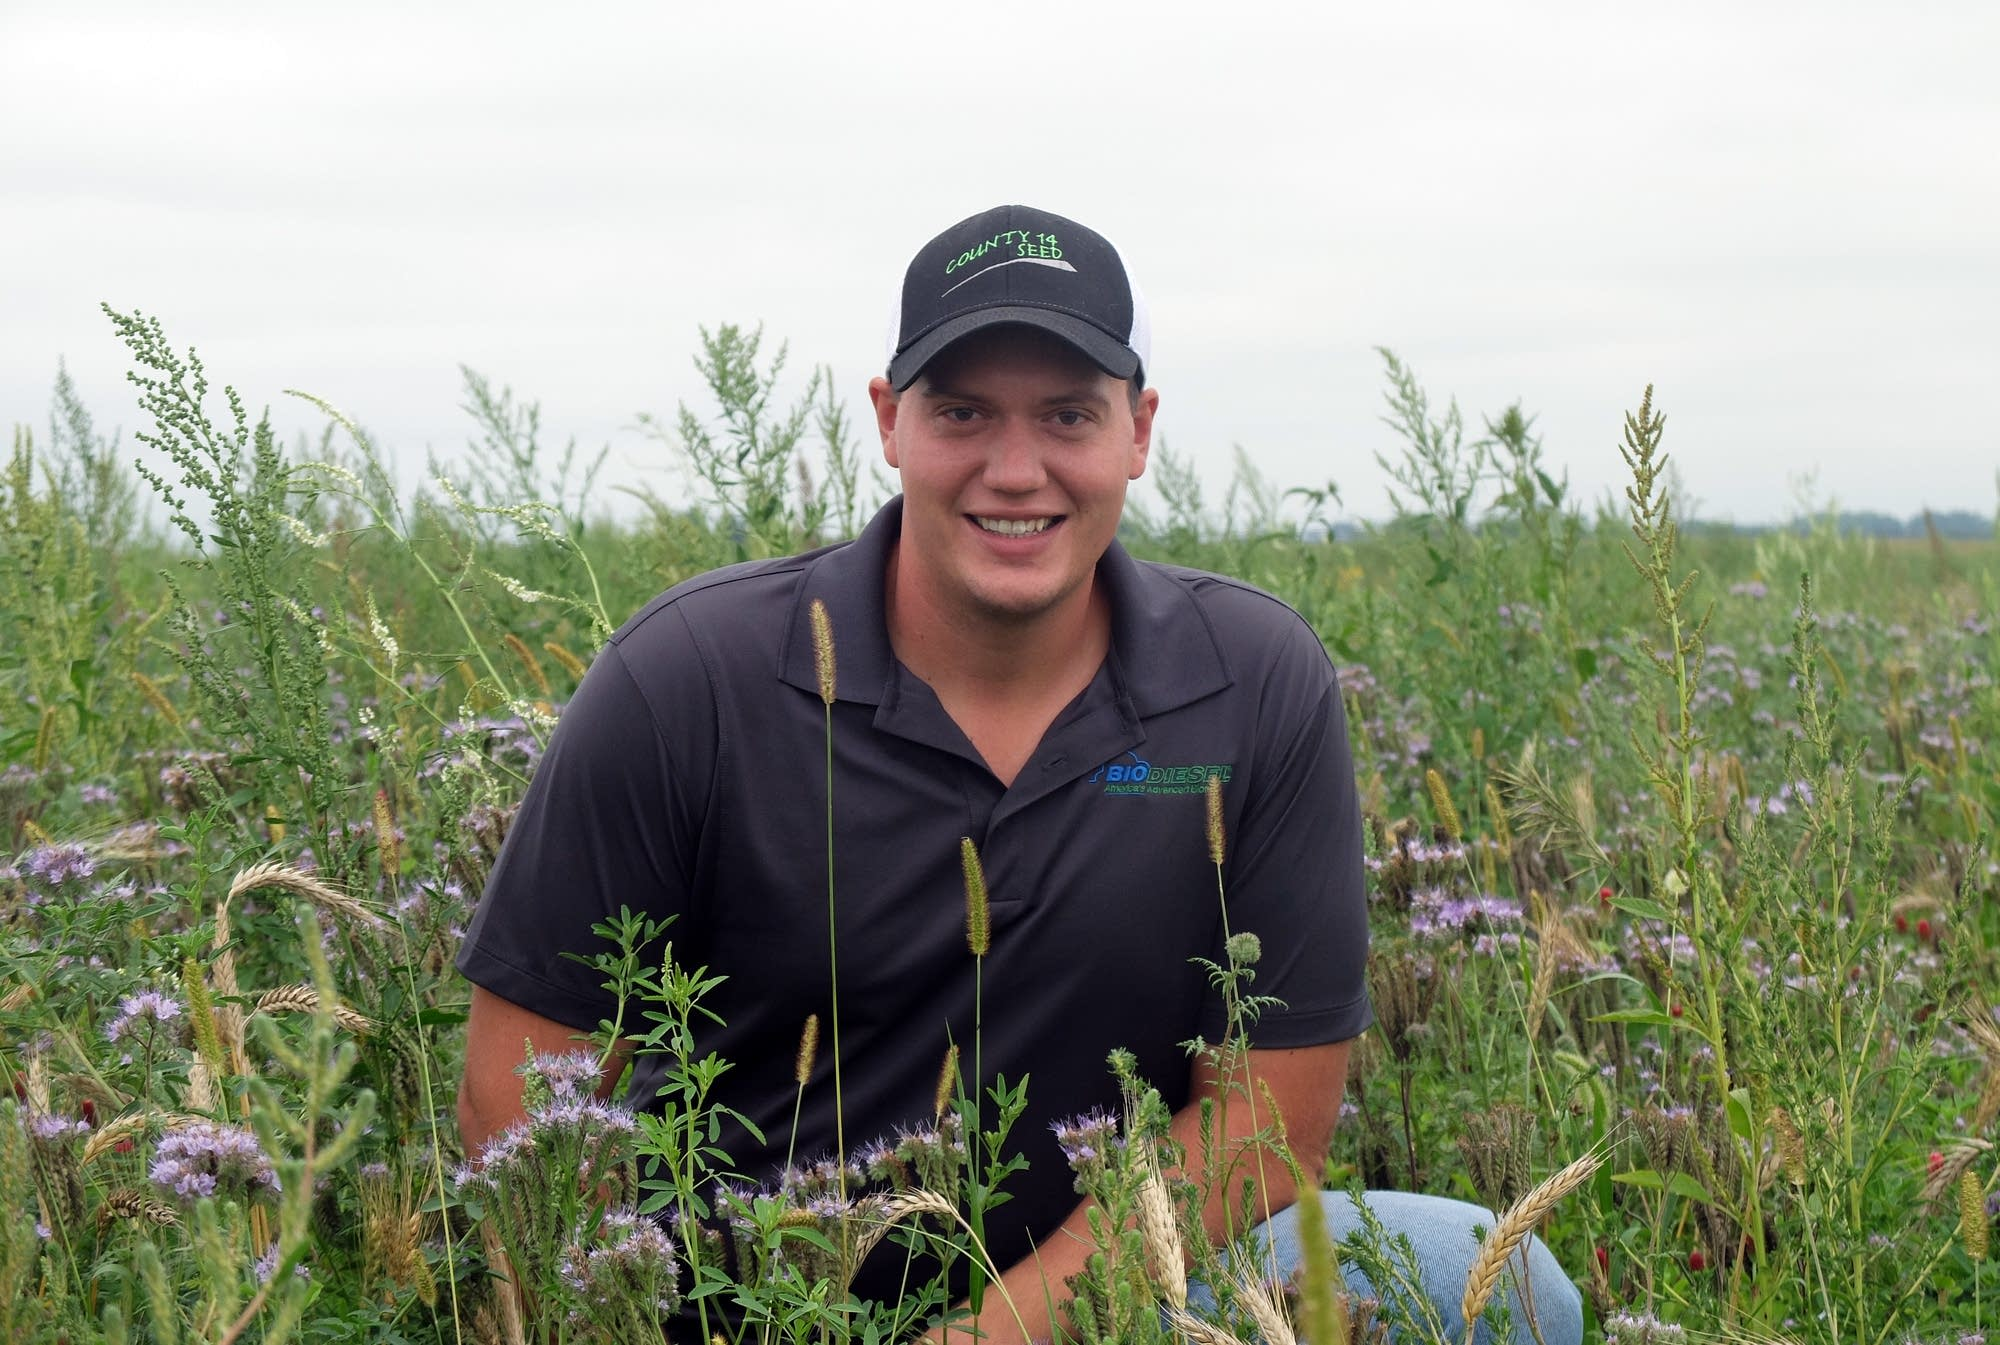 LaMoure, N.D., farmer Kasey Bitz poses in a field of pollinator habitat.